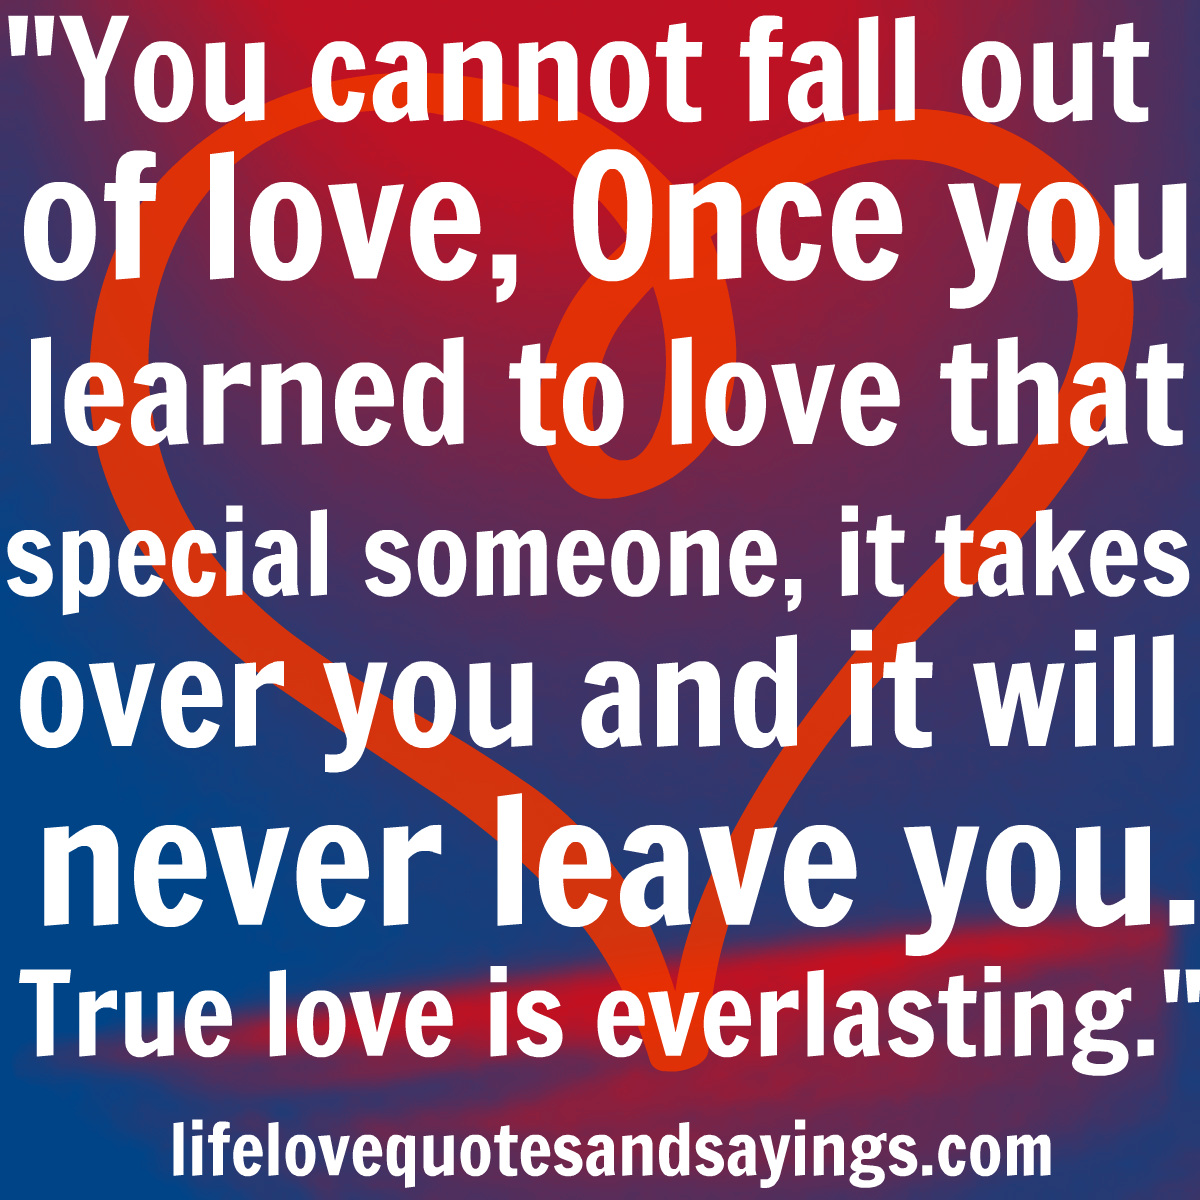 Falling Out Of Love Quotes And Sayings. QuotesGram